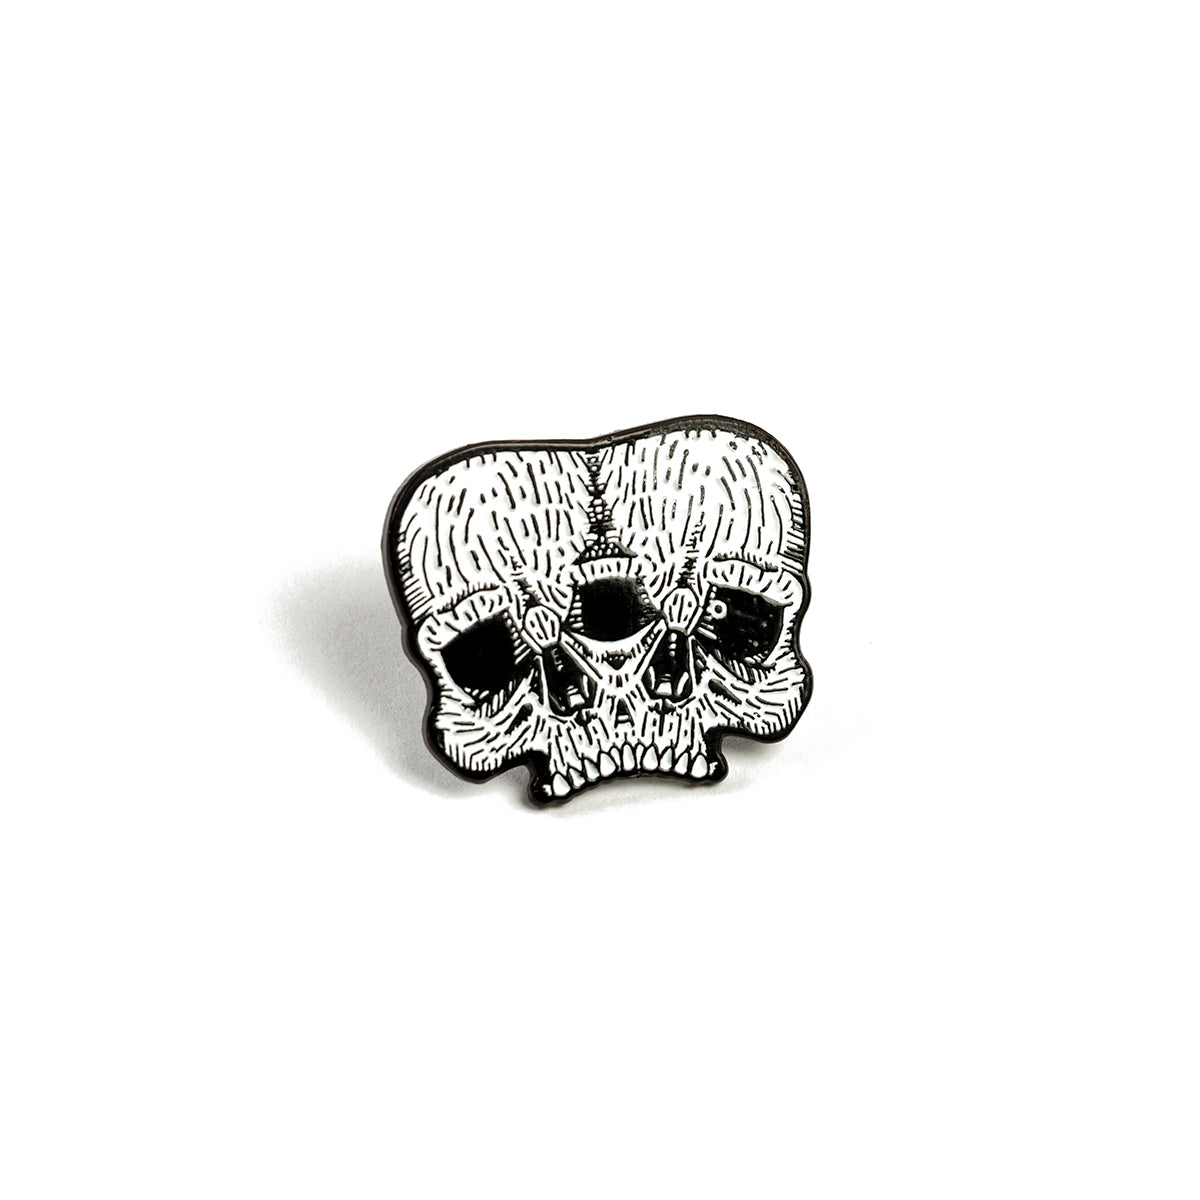 'Seeing Double Your Bullshit' Soft Enamel Lapel Pin